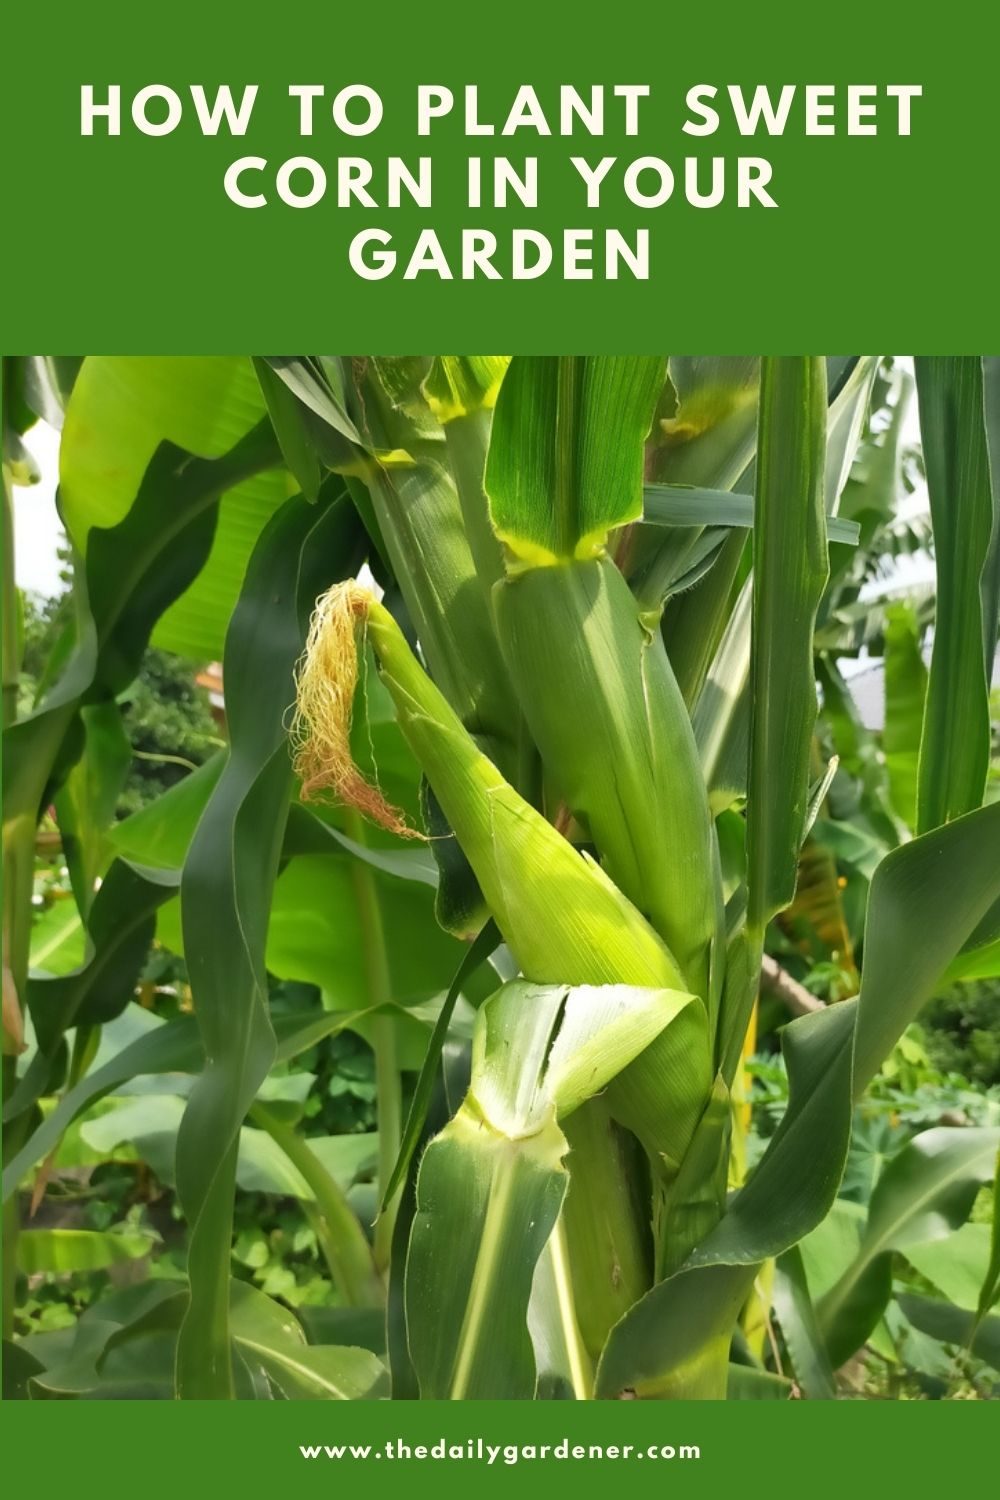 How to Plant Sweet Corn in Your Garden 2